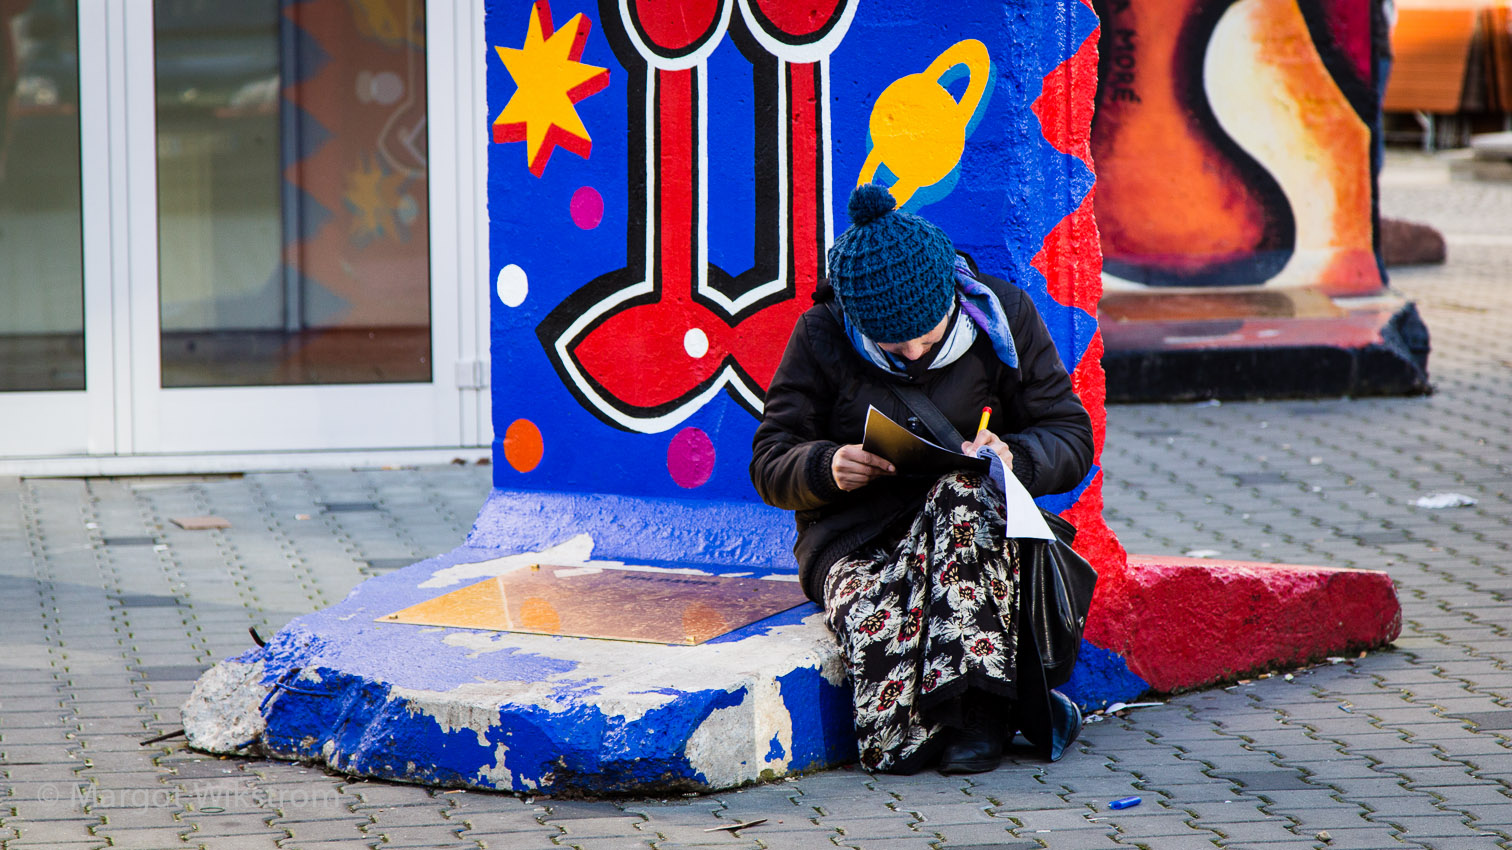 Lady Writing on Berlin Wall